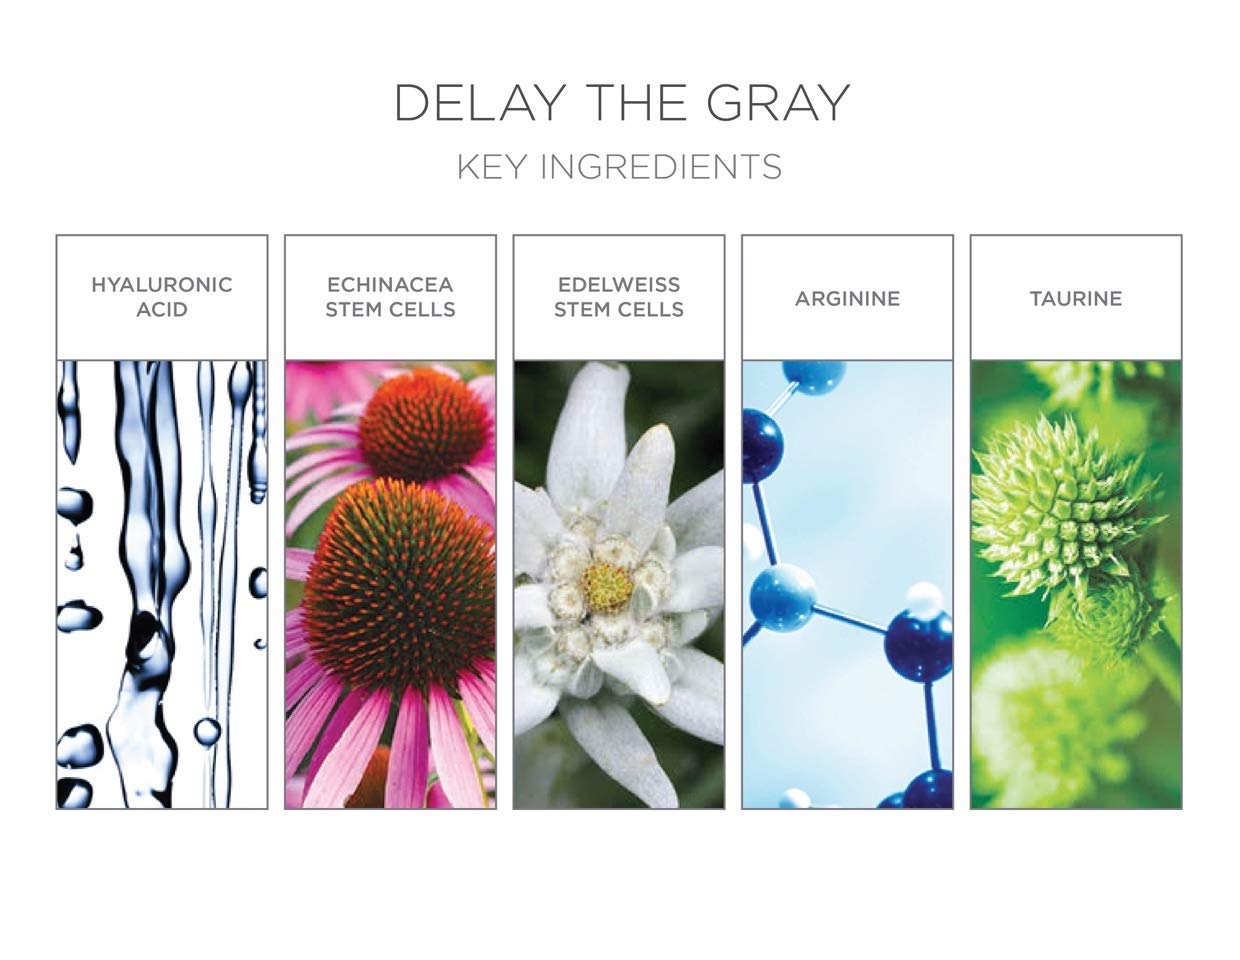 Julien Farel Magnifique Delay The Grey Hair & Scalp Serum, 1.7 Fl Oz – SLS & Paraben Free – Best for Normal, Fine, Thinning, Damaged and All Hair Types, As Seen on The View by Julien Farel Products (Image #3)